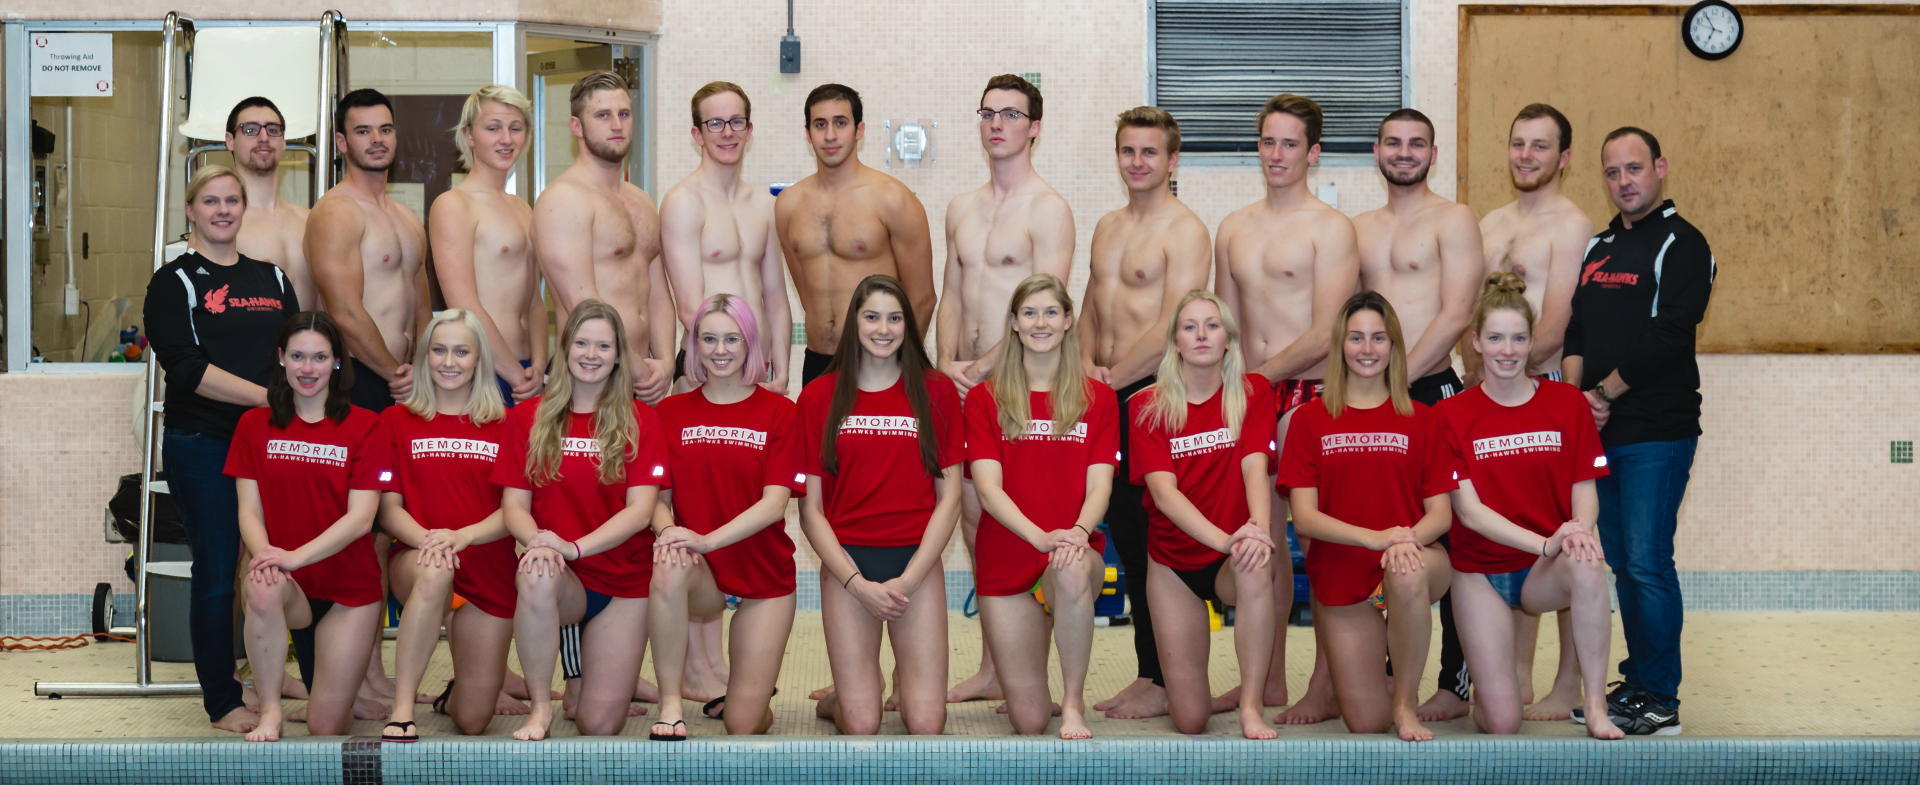 Sea-Hawks Aim to Make Splash at AUS Championships